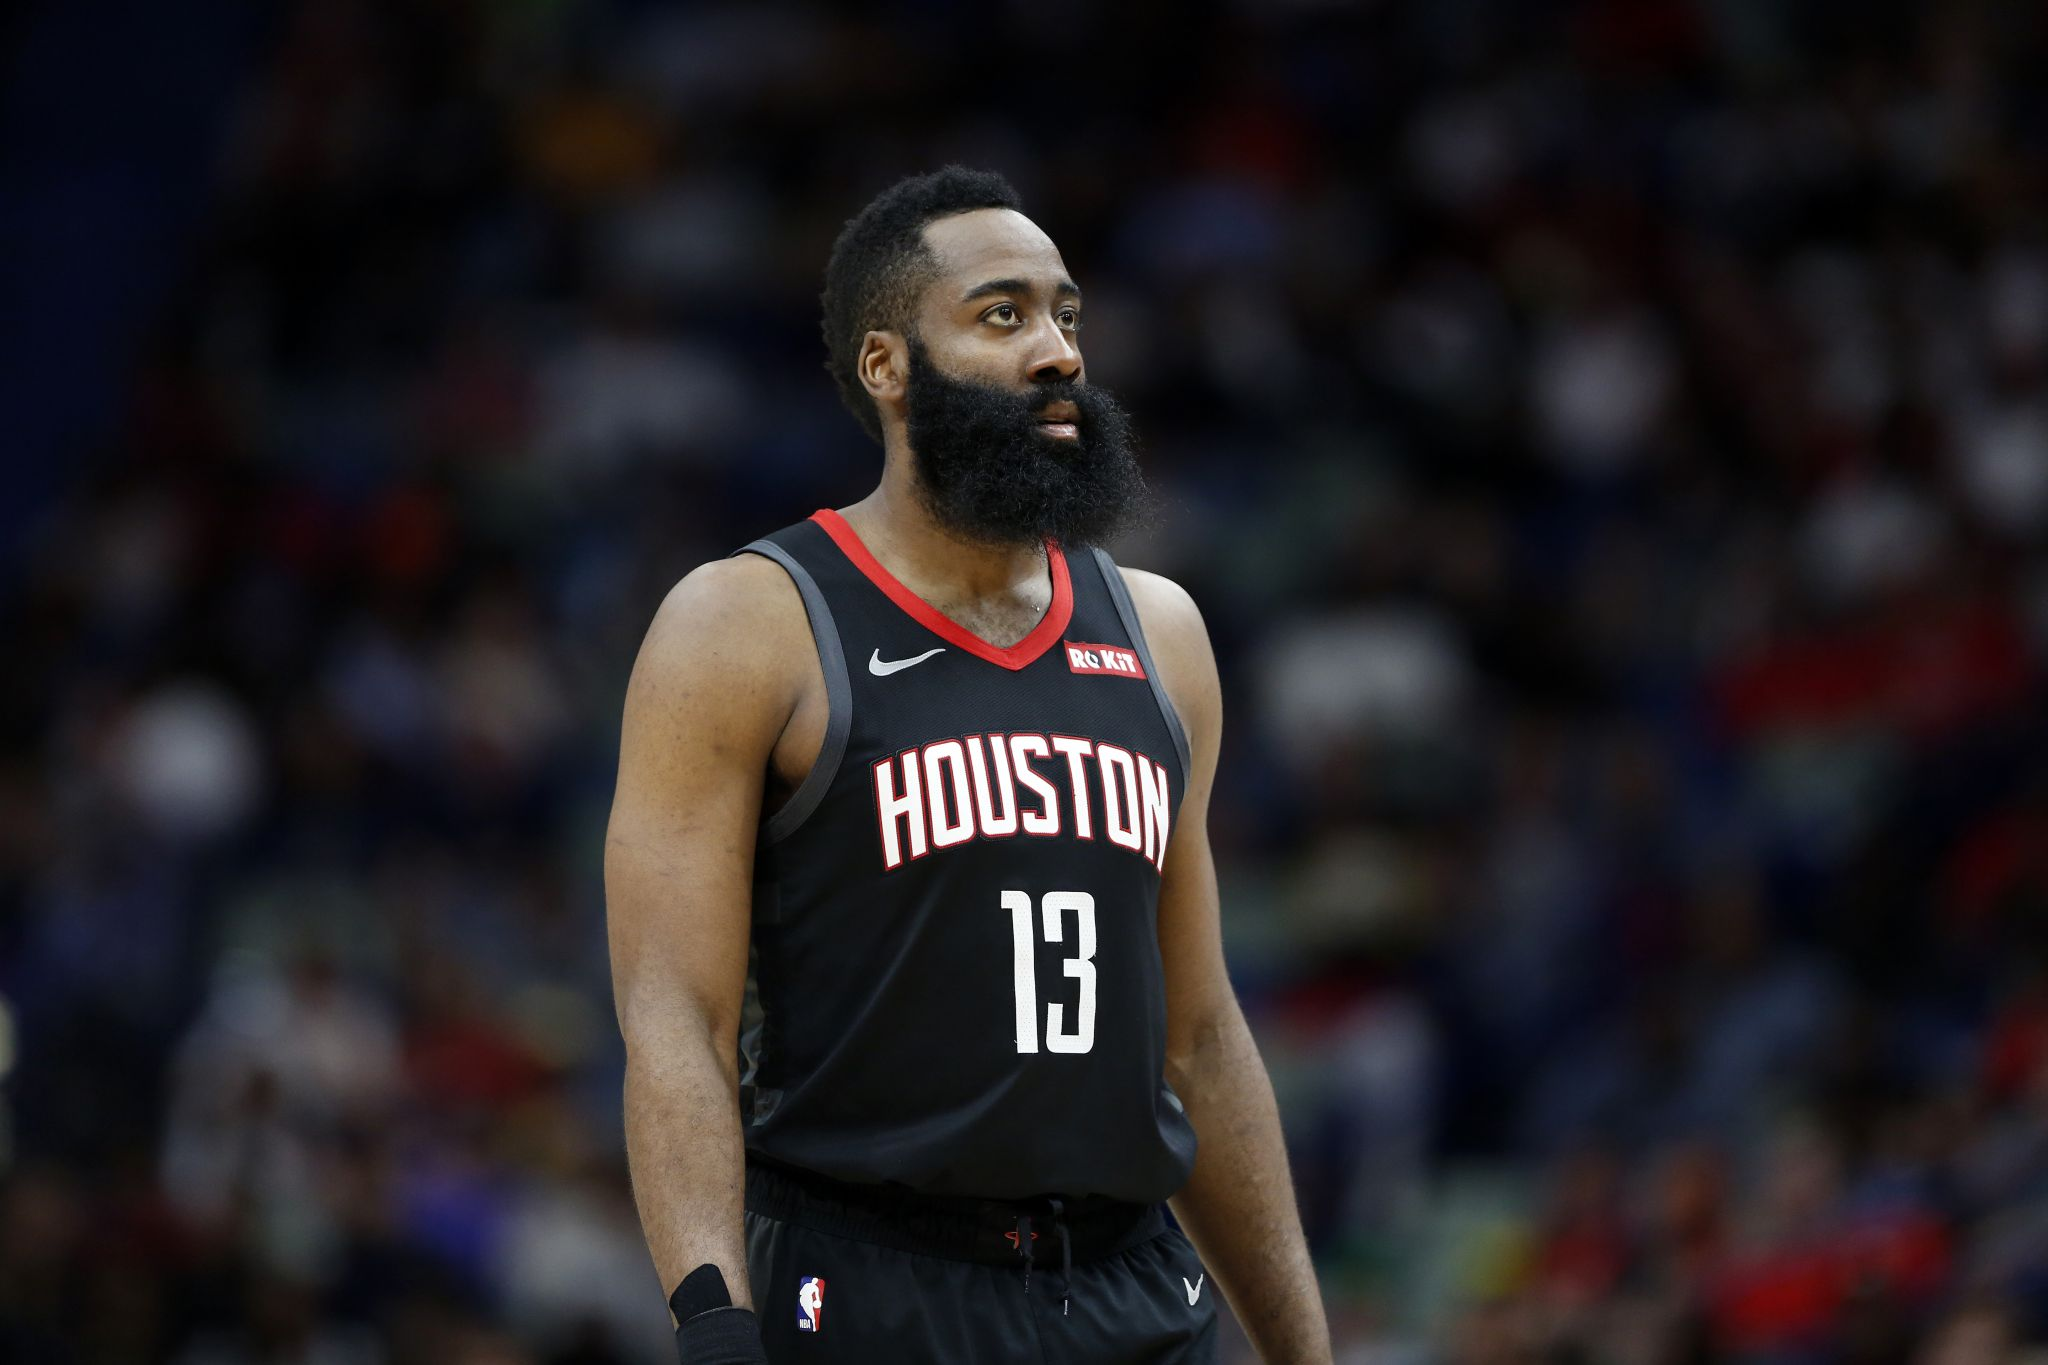 b4579027b2c Rockets  James Harden named Western Conference Player of the Week - Houston  Chronicle